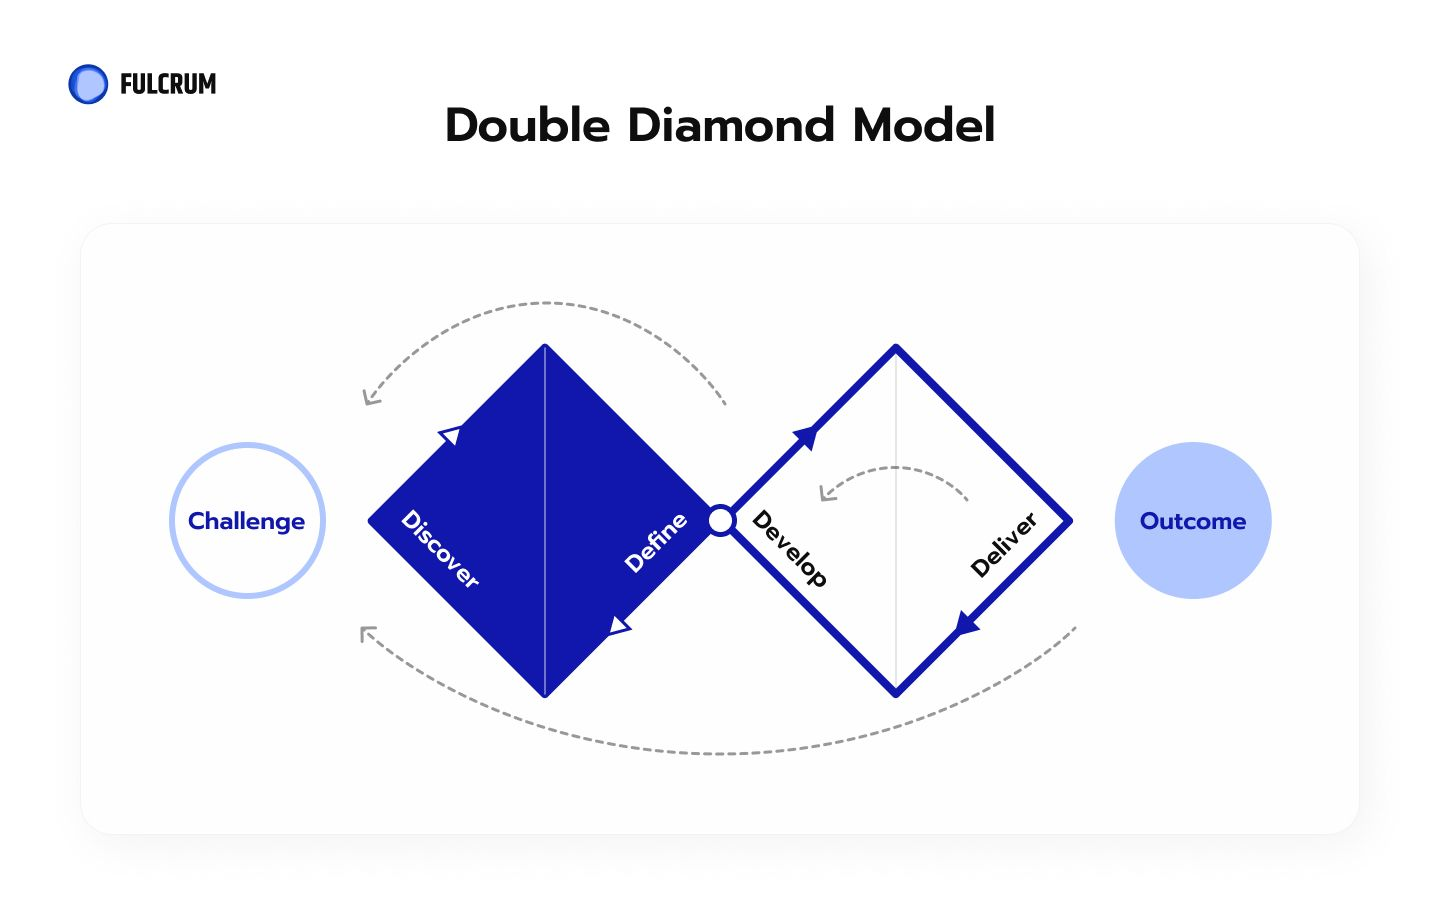 Double Diamond Design as the Way to Deliver Aesthetic Solutions to Real Problems.